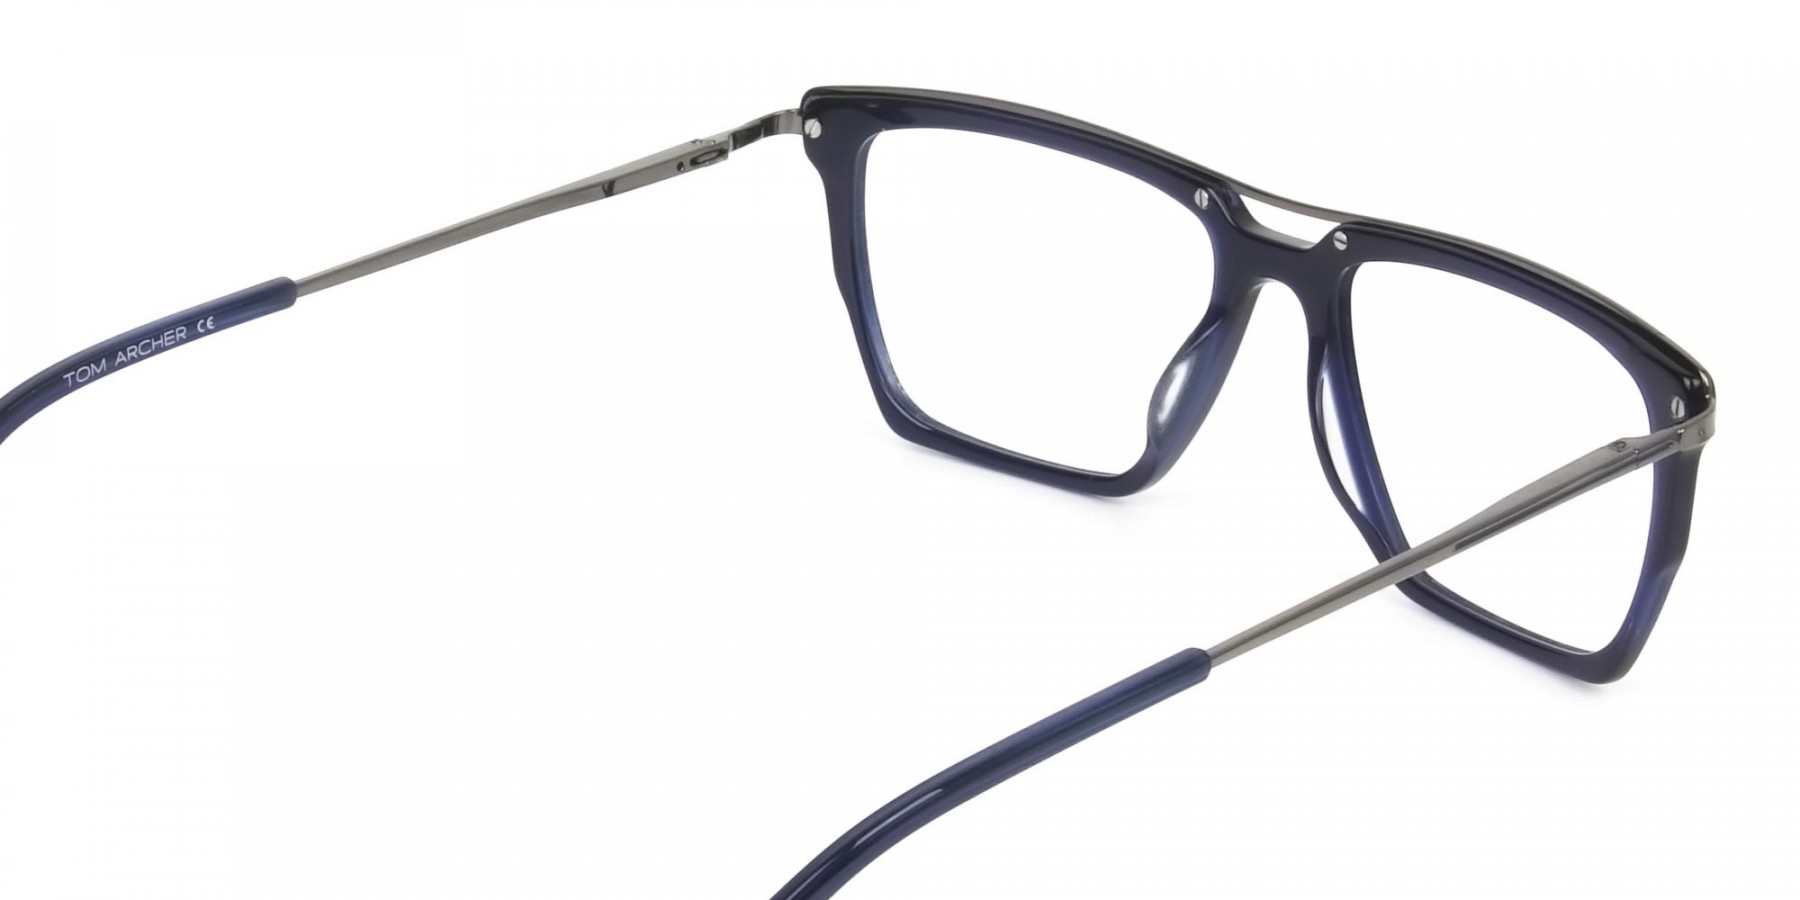 Mixed Material Glasses in Gunmetal Navy Blue - 1